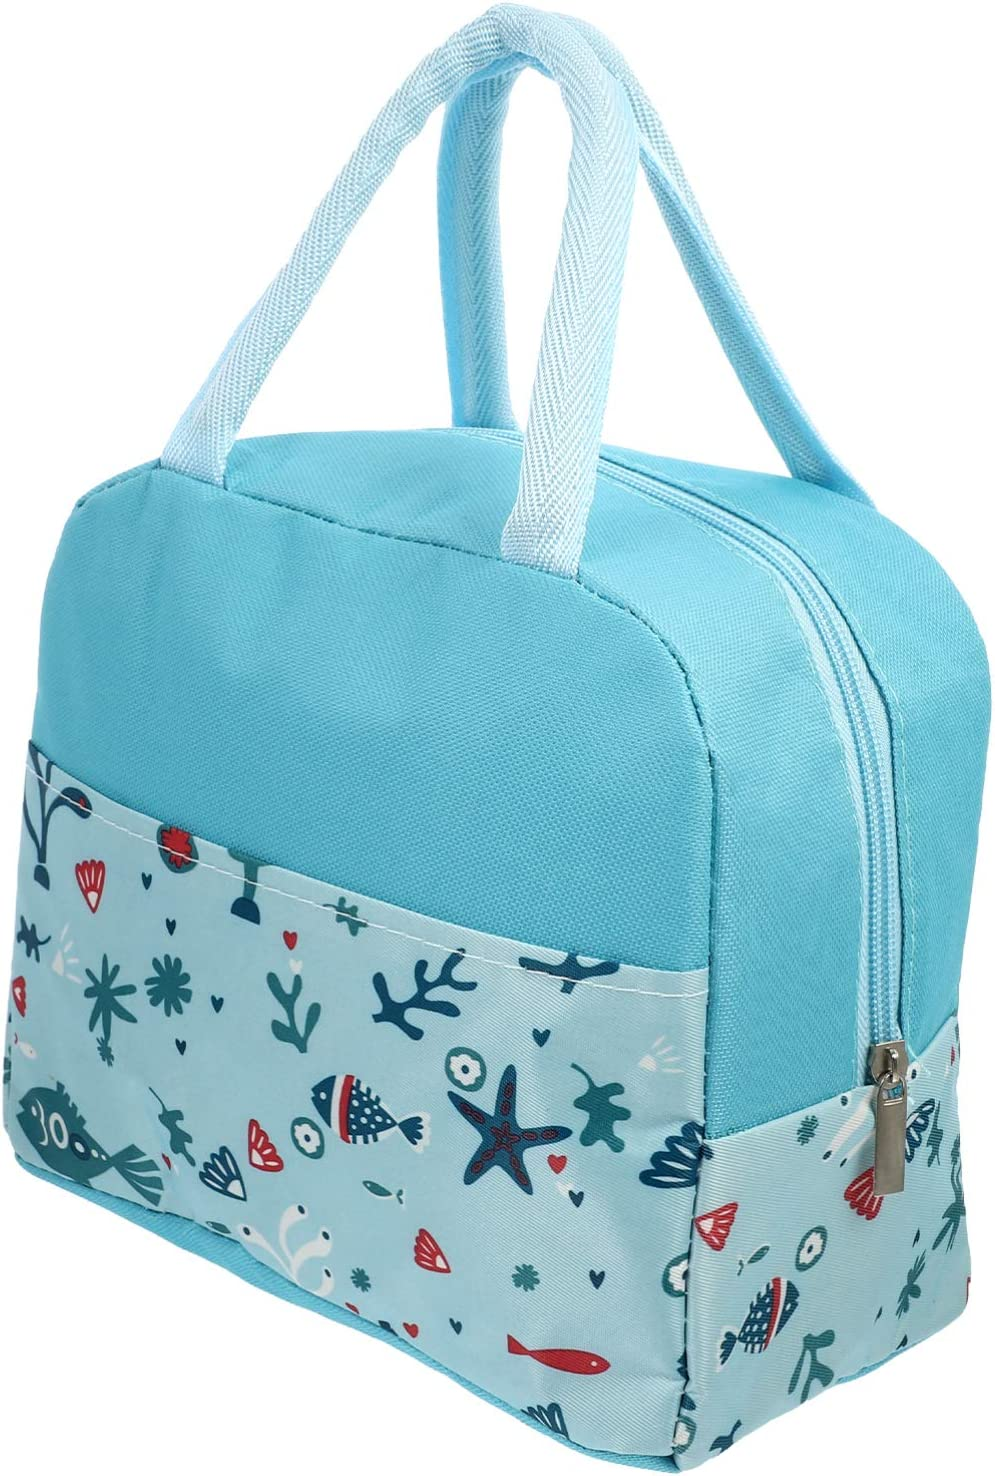 TOYANDONA Insulated Lunch Bags Waterproof Food Tote Bag Foldable Washable Lunch Pouch for Outdoor School Work (Sky- Blue)